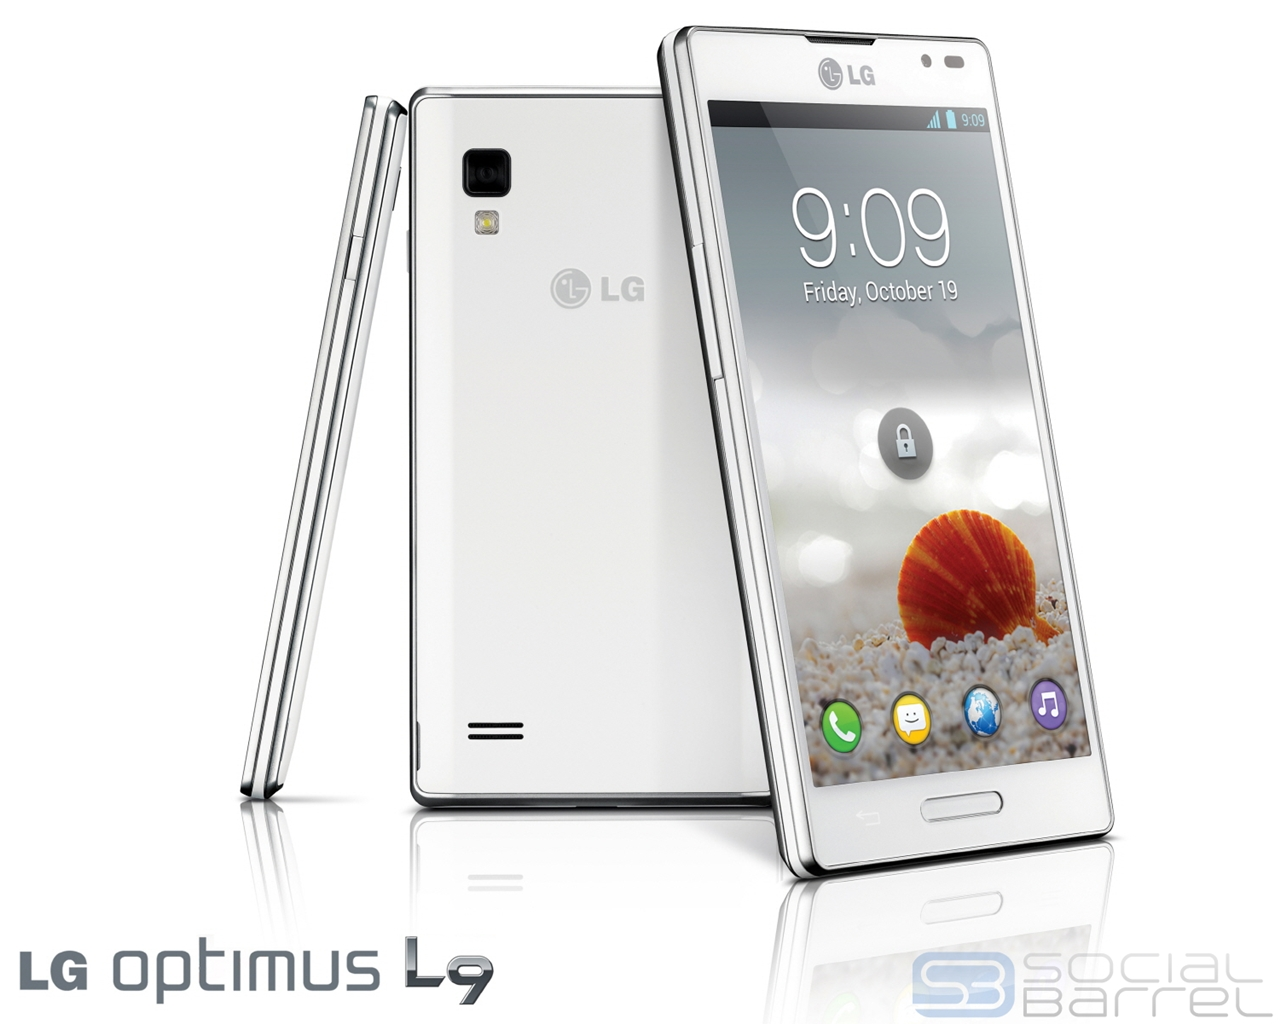 Optimus L9, LG, LG Optimus L9, QTranslator, 